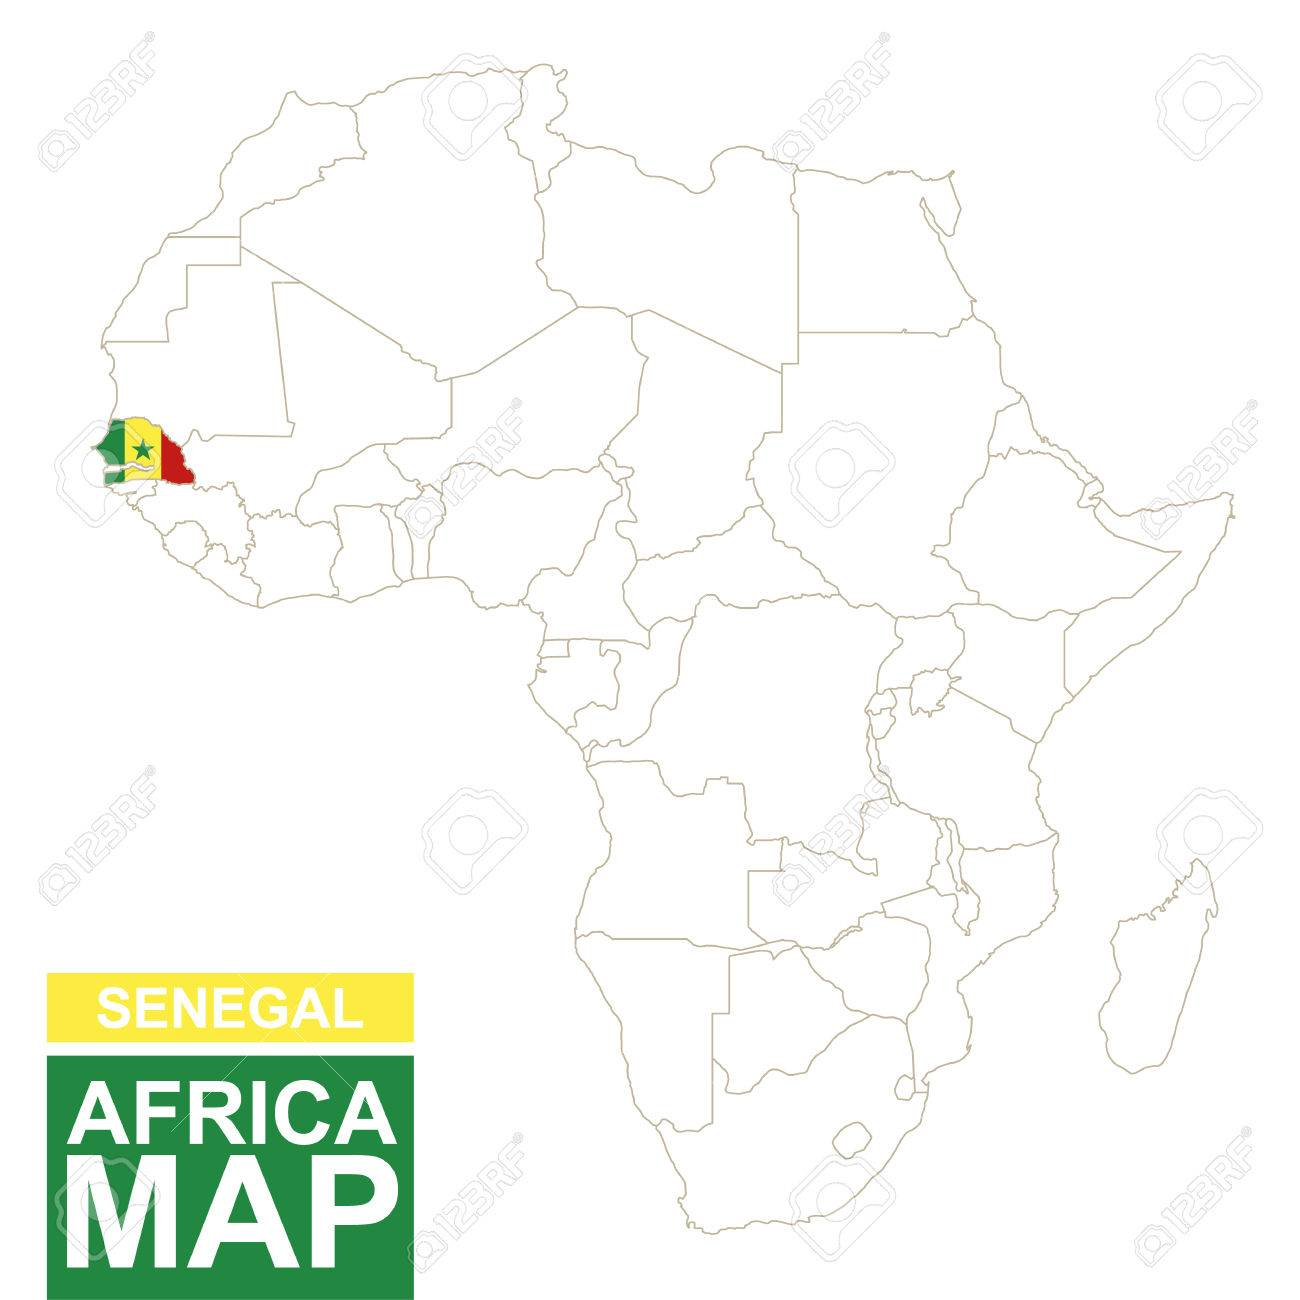 Senegal On Africa Map.Africa Contoured Map With Highlighted Senegal Senegal Map And